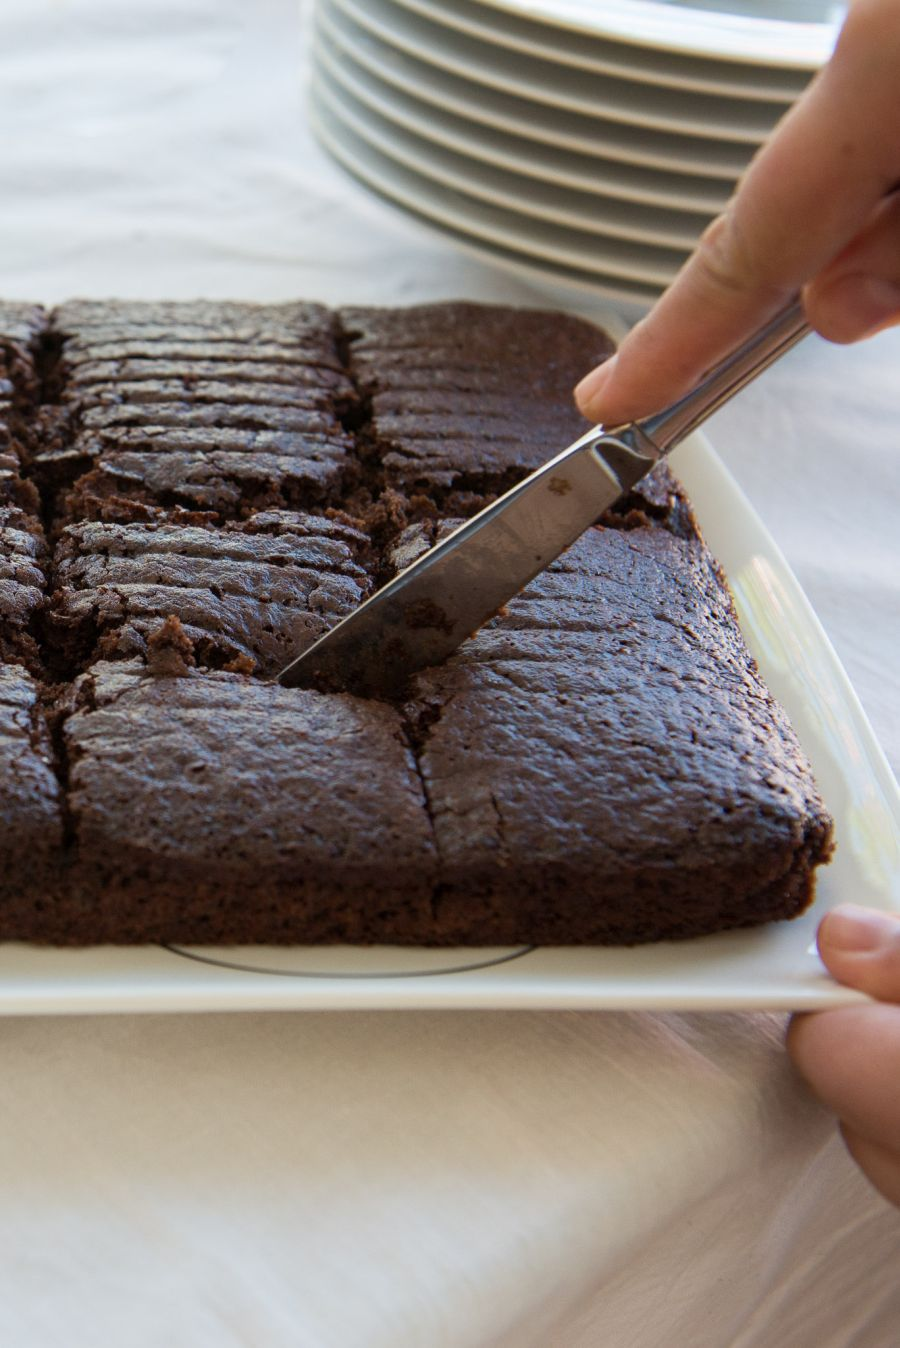 Carving up the Coca-Cola brownies